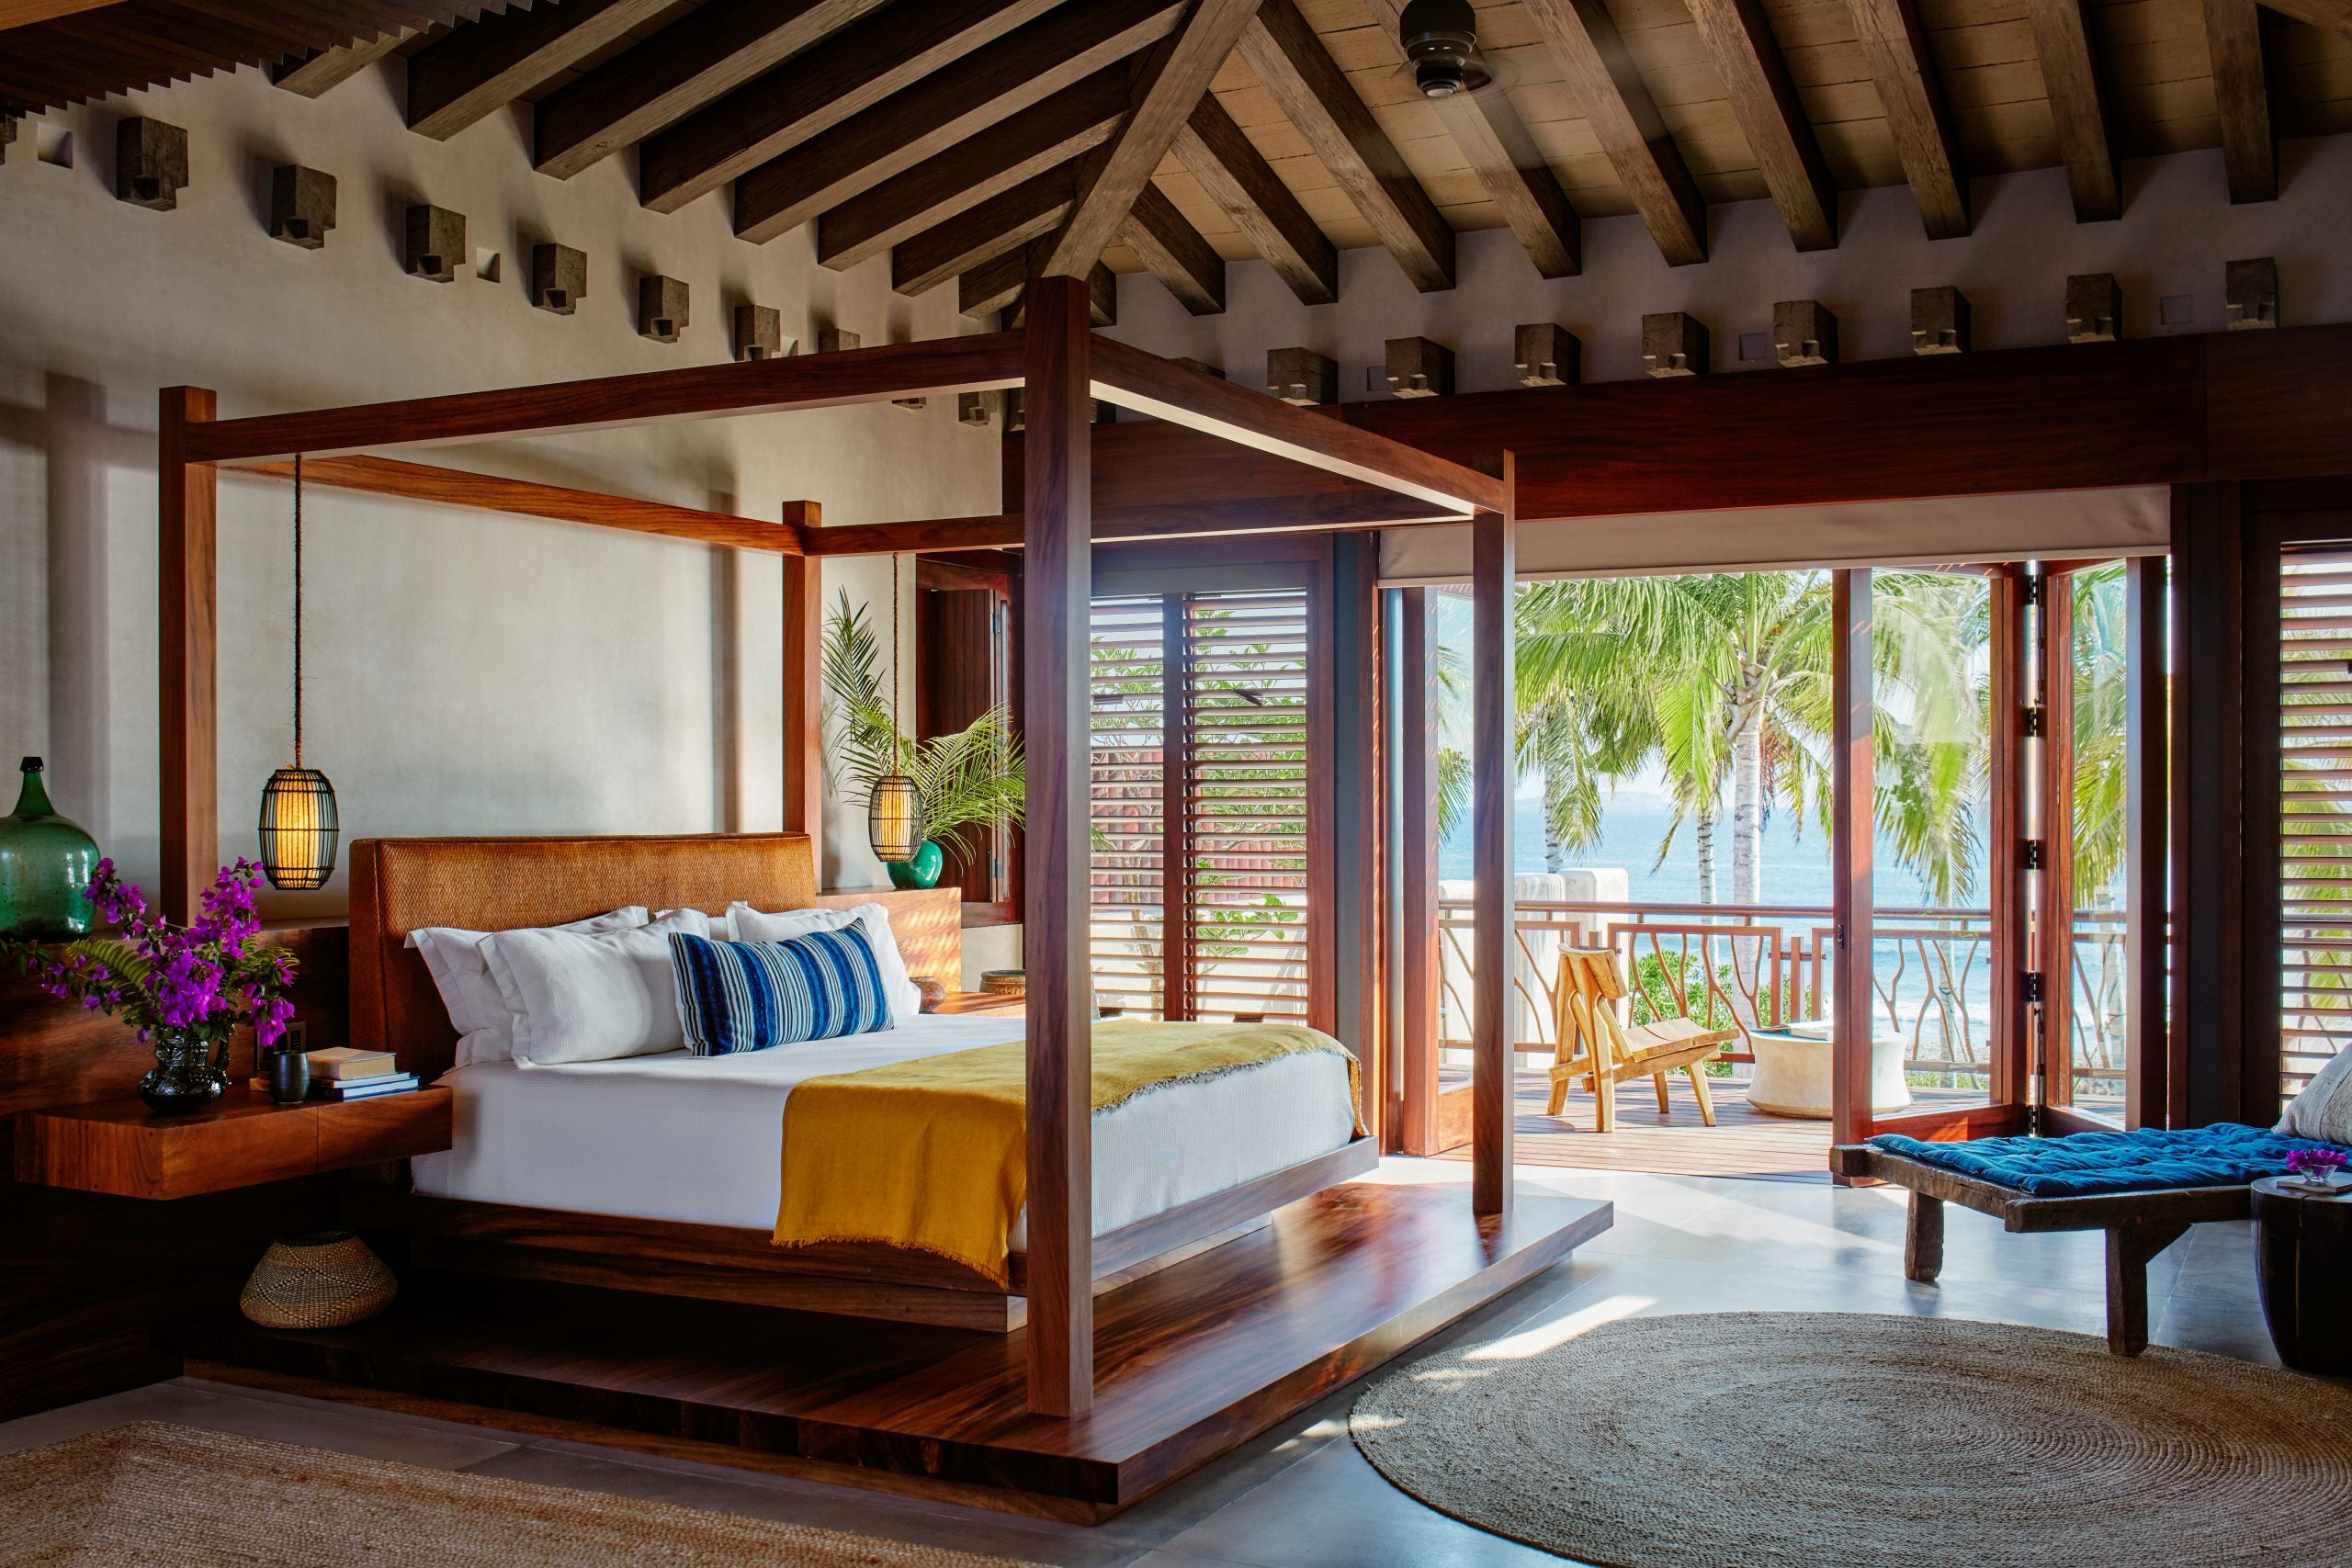 Use your Capital One Venture miles to stay at these 10 stunning Airbnb homes - The Points Guy